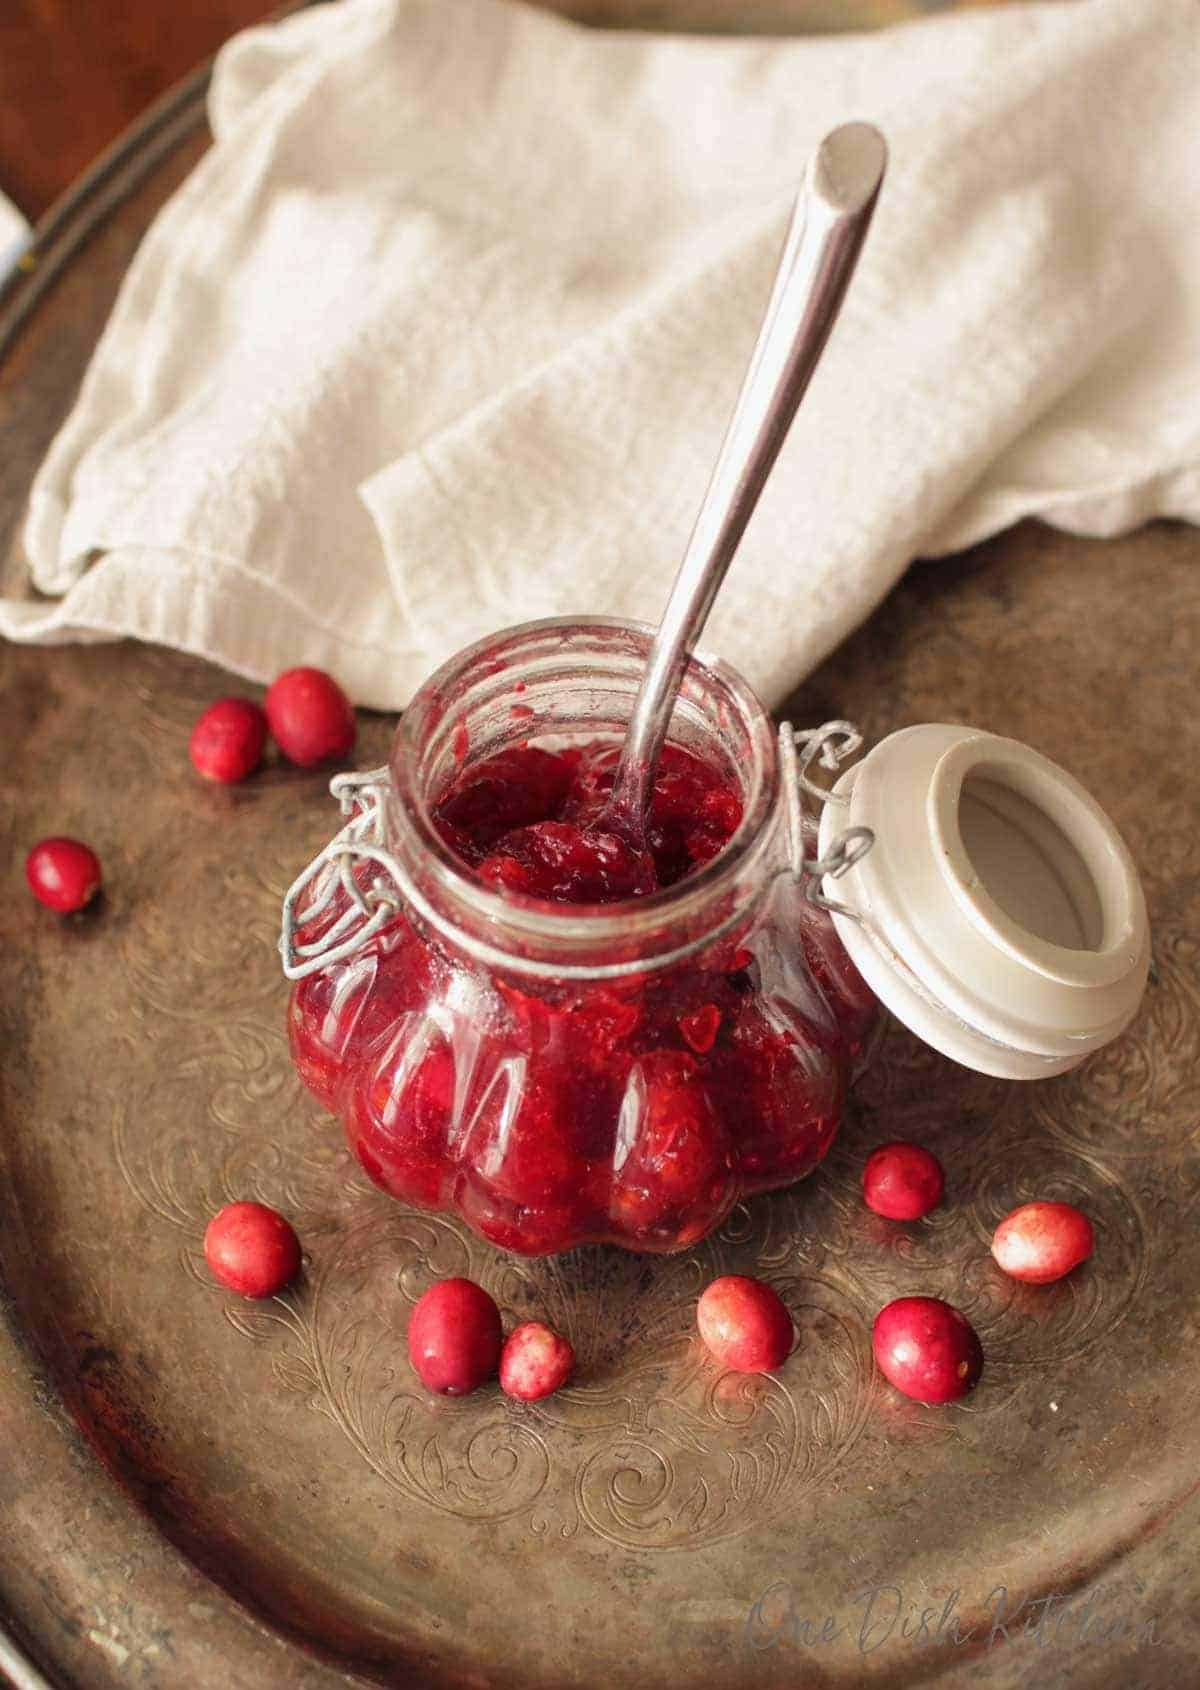 An overhead view of a jar of cranberry jam with a spoon on a metal tray with scattered cranberries and a white cloth napkin